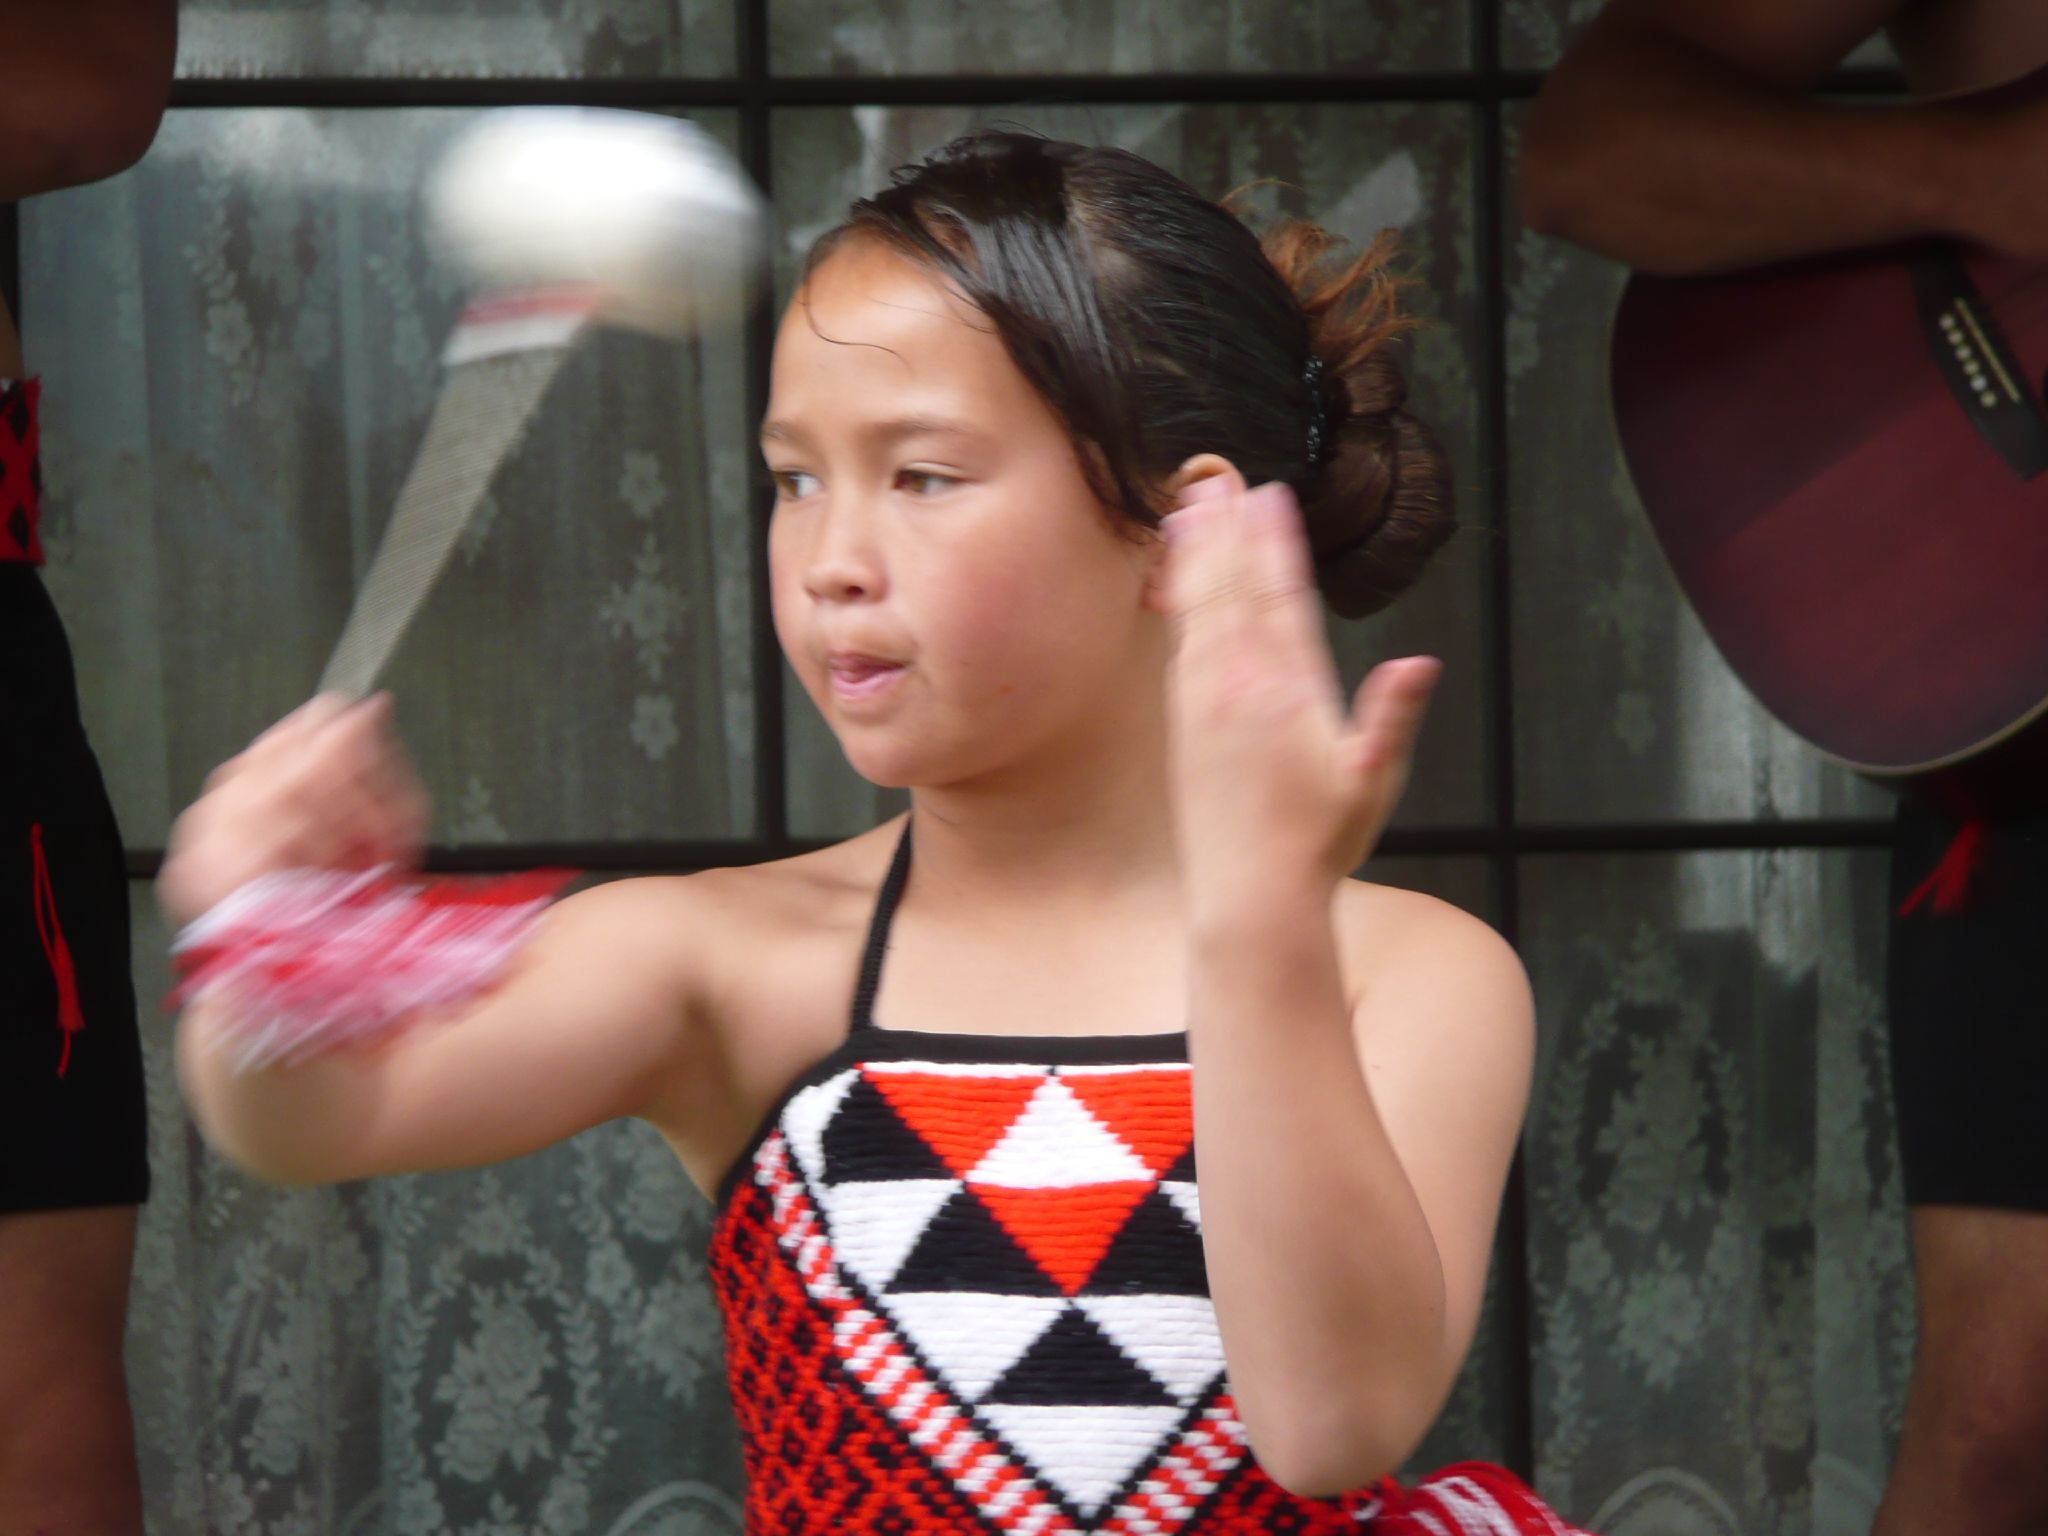 Young Maori girl in traditional dress dancing a poi. Photo taken on December 1, 2007.